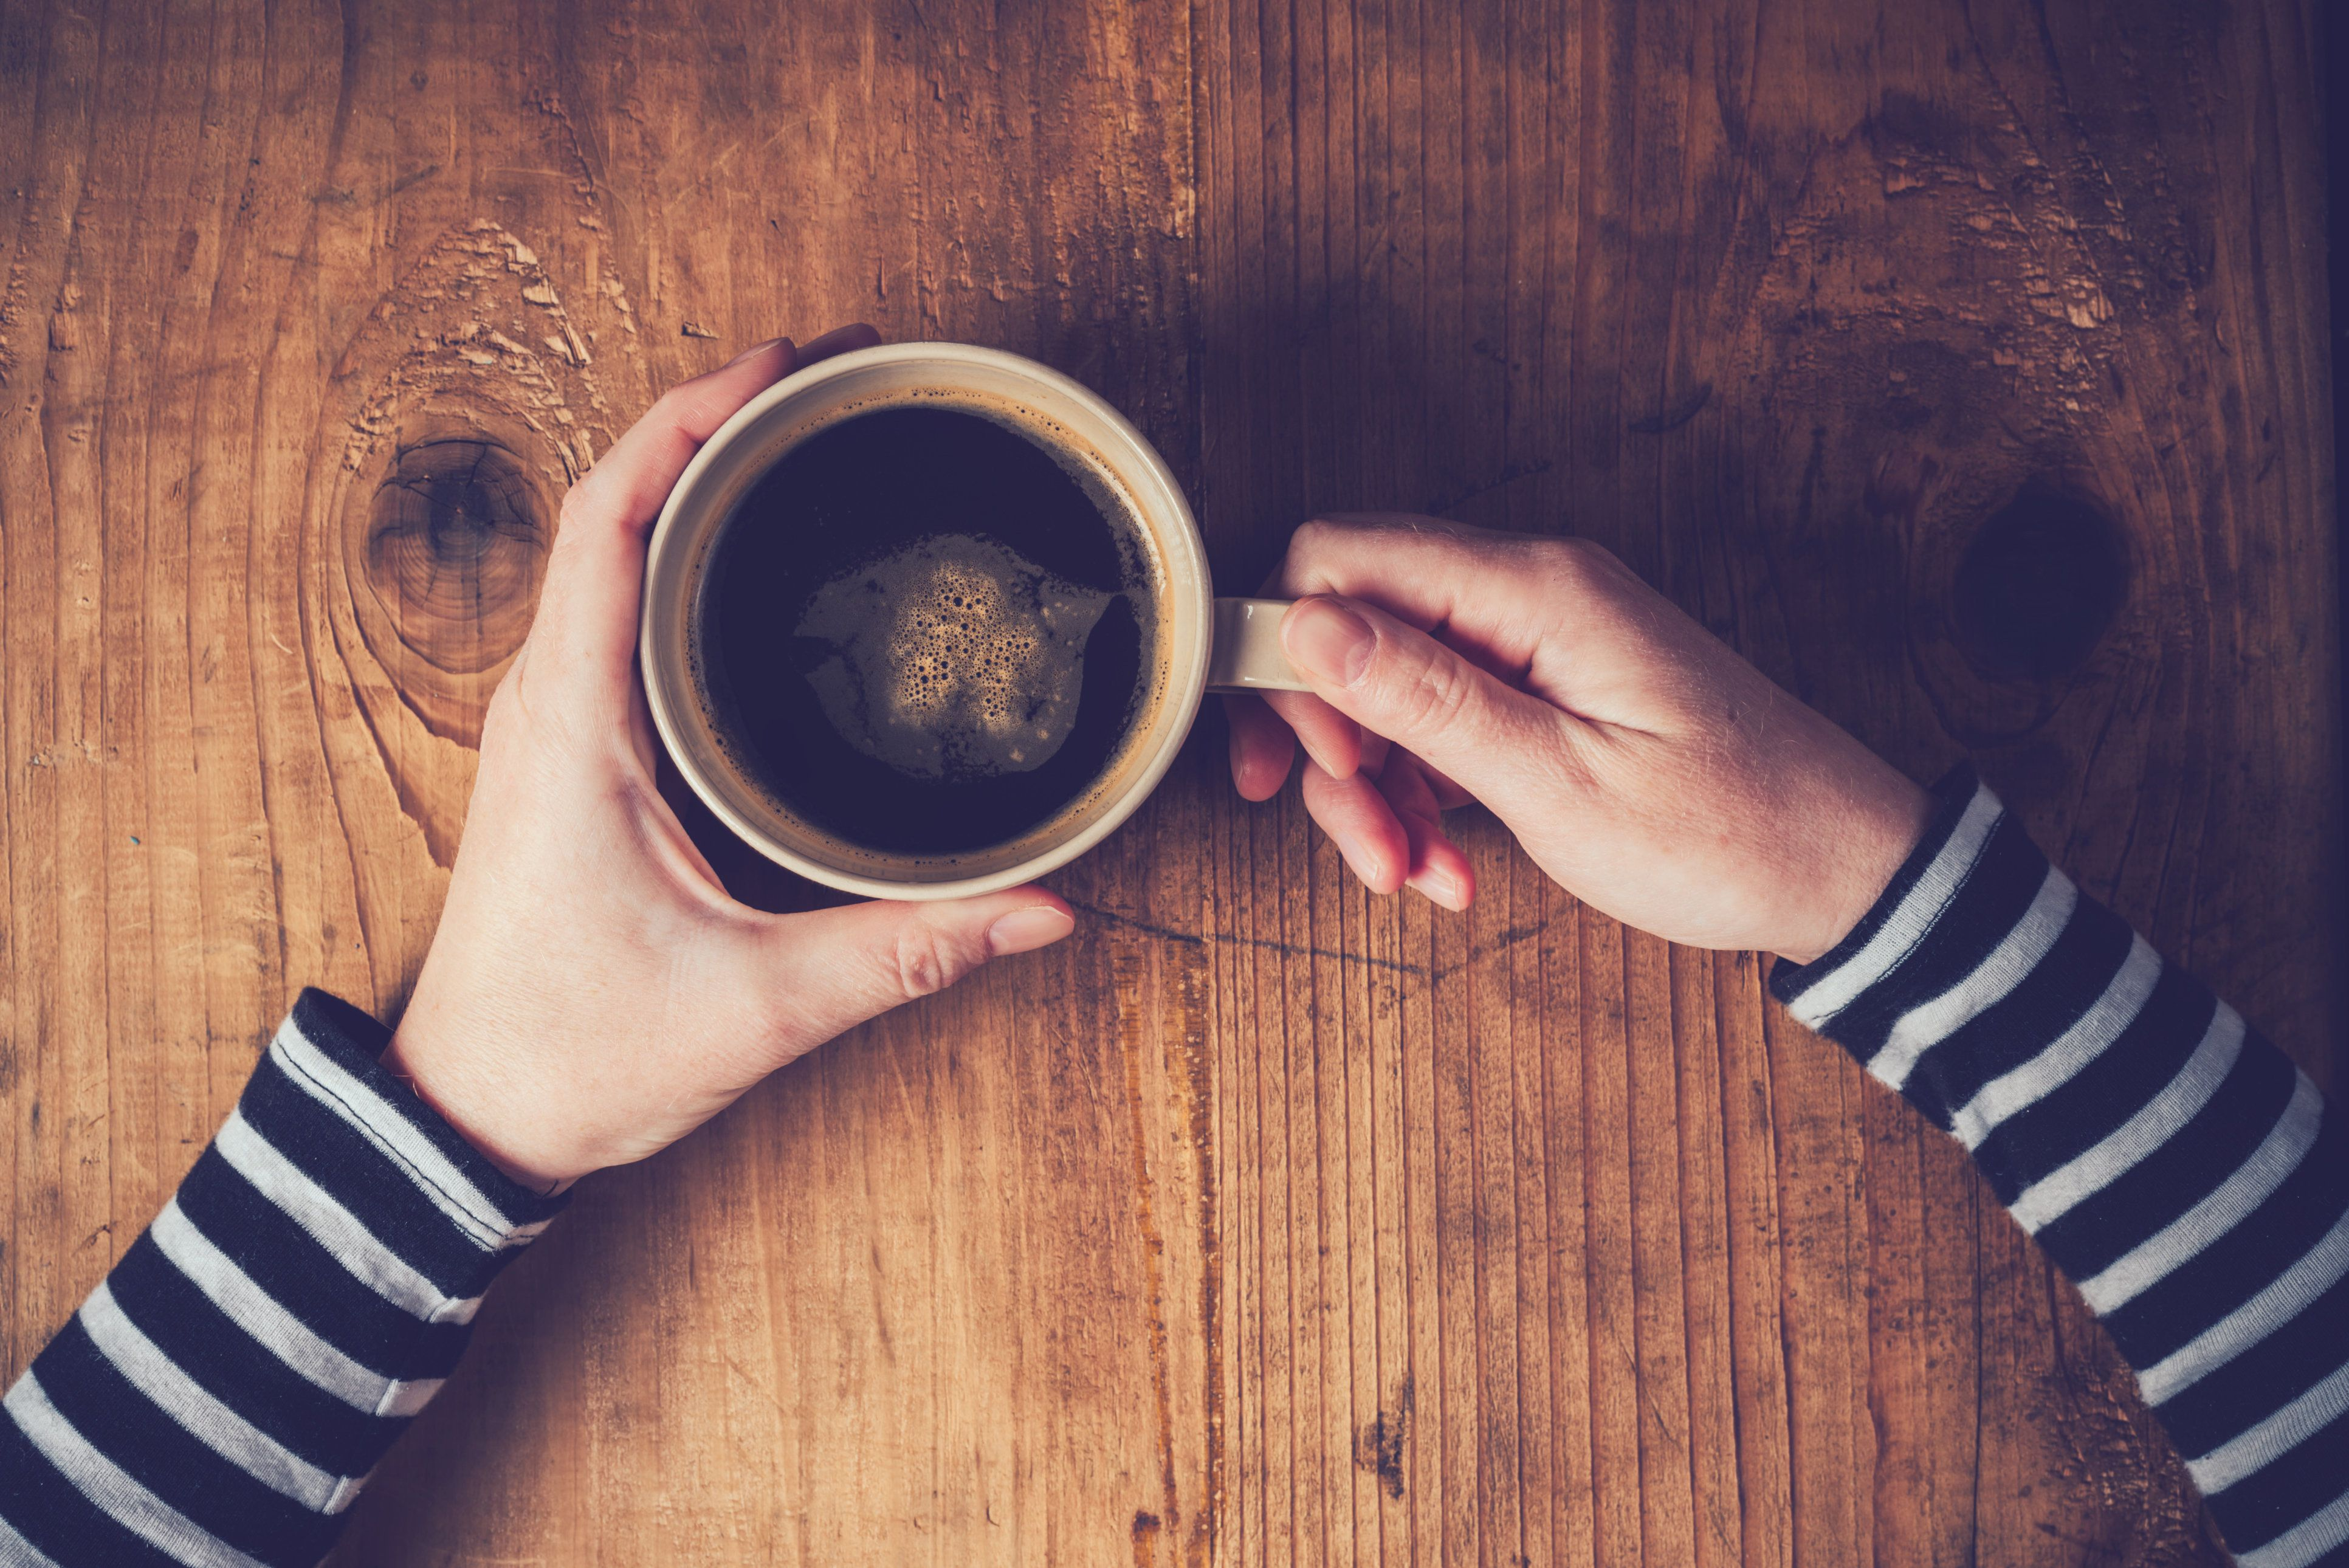 Lonely woman drinking coffee in the morning, top view of female hands holding cup of hot beverage on wooden desk, retro toned.